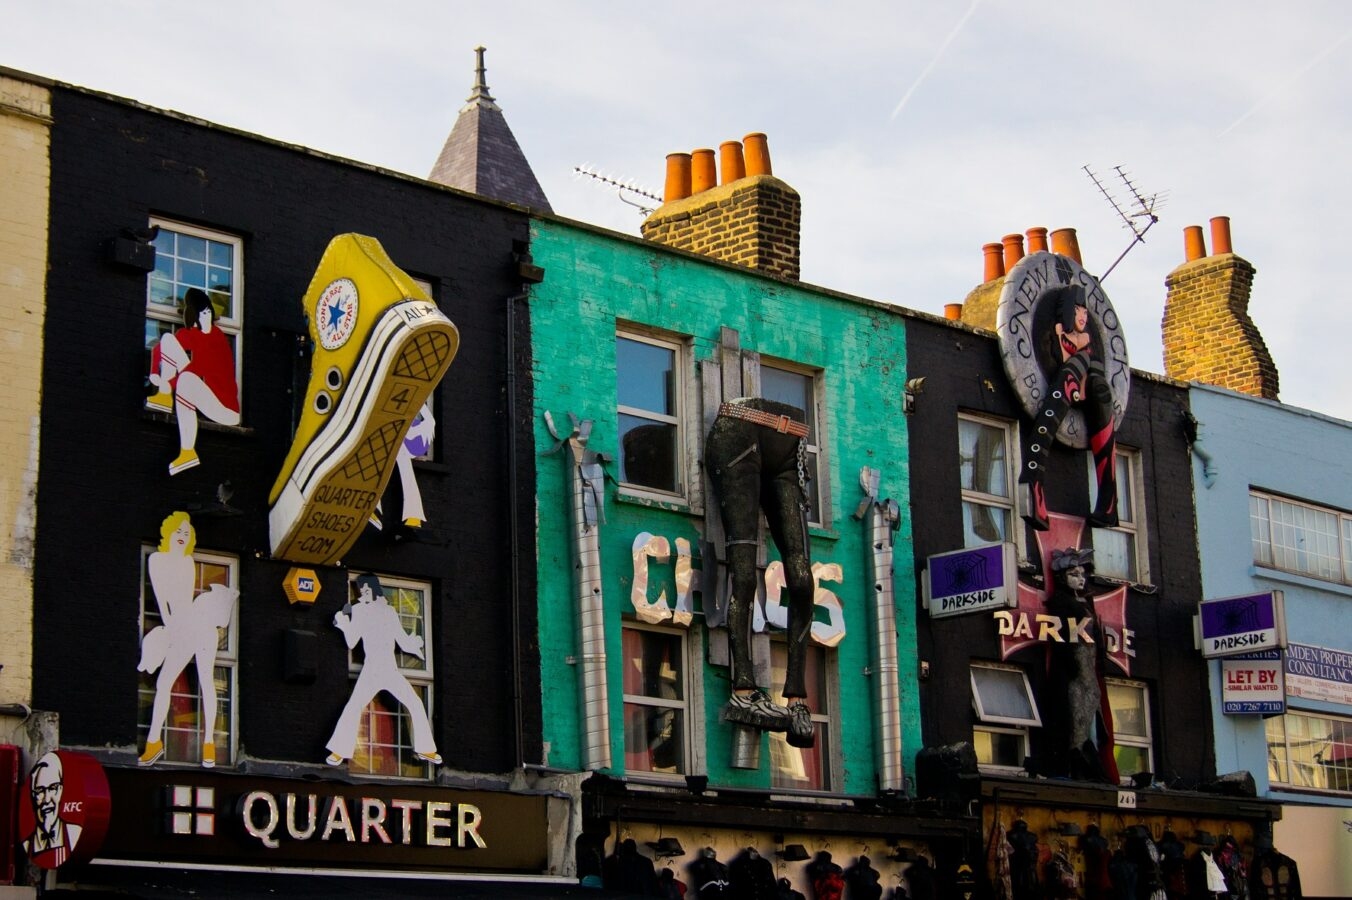 urban design in Camden Town